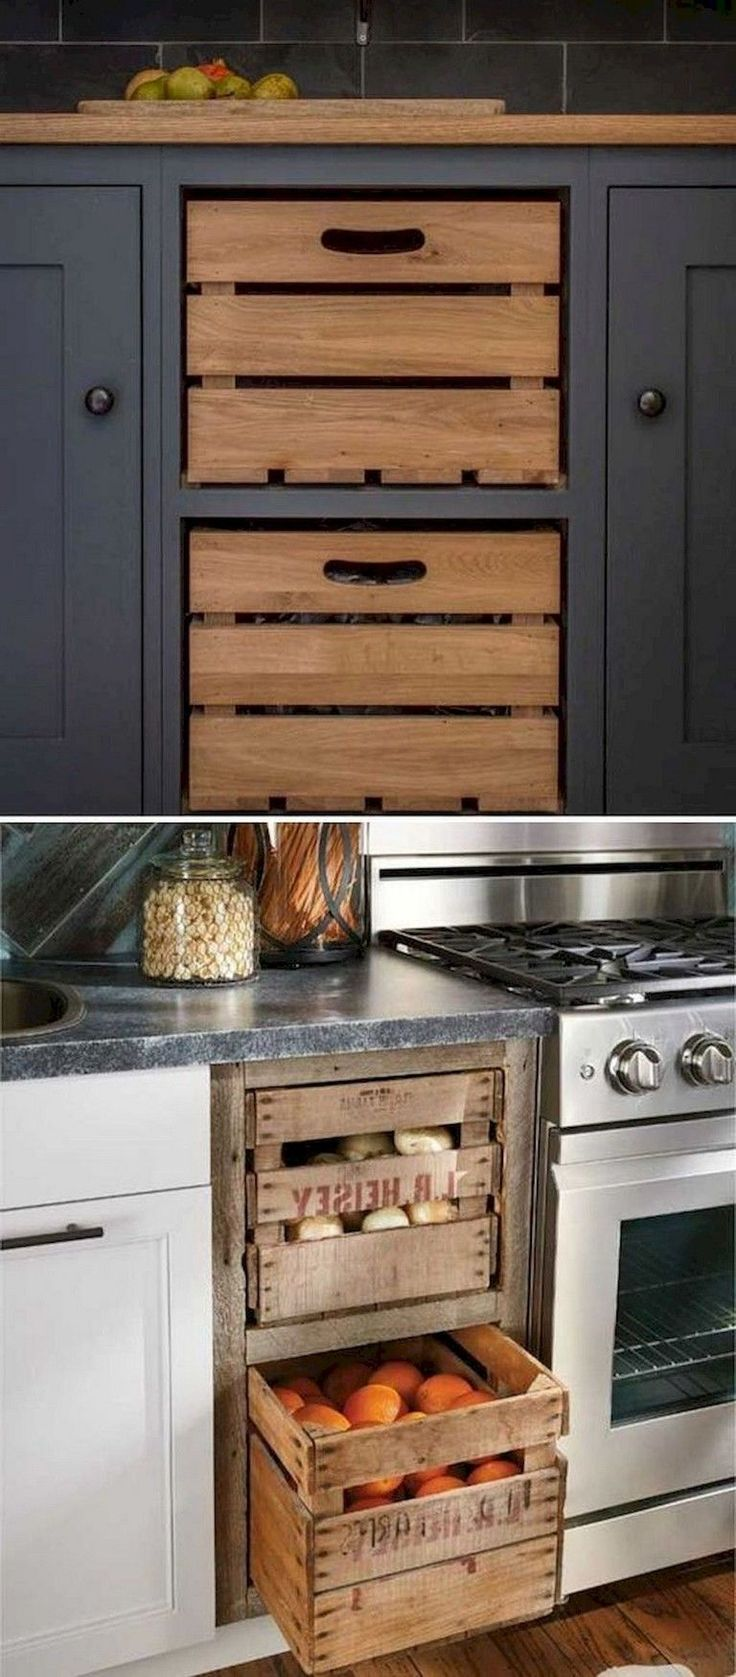 Photo of #kücheideen Kitchen Accessories You Didn't Know You Needed – Interior Design Ideas & Home Decorating Inspiration – moercar – kuche